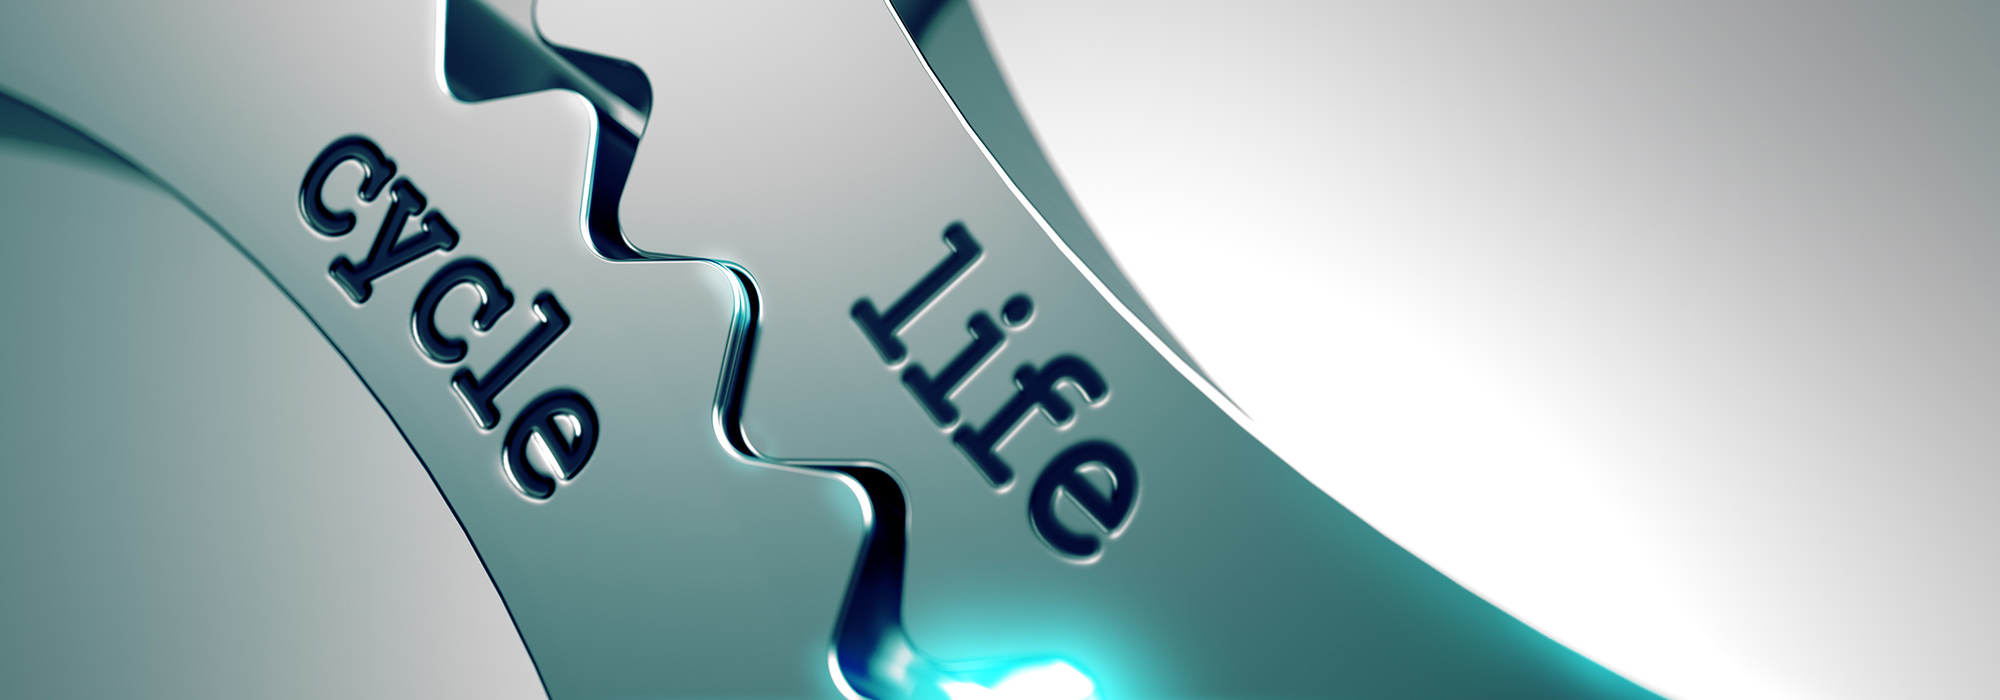 Abstract image of LCD lifecycle support and lifecycle management